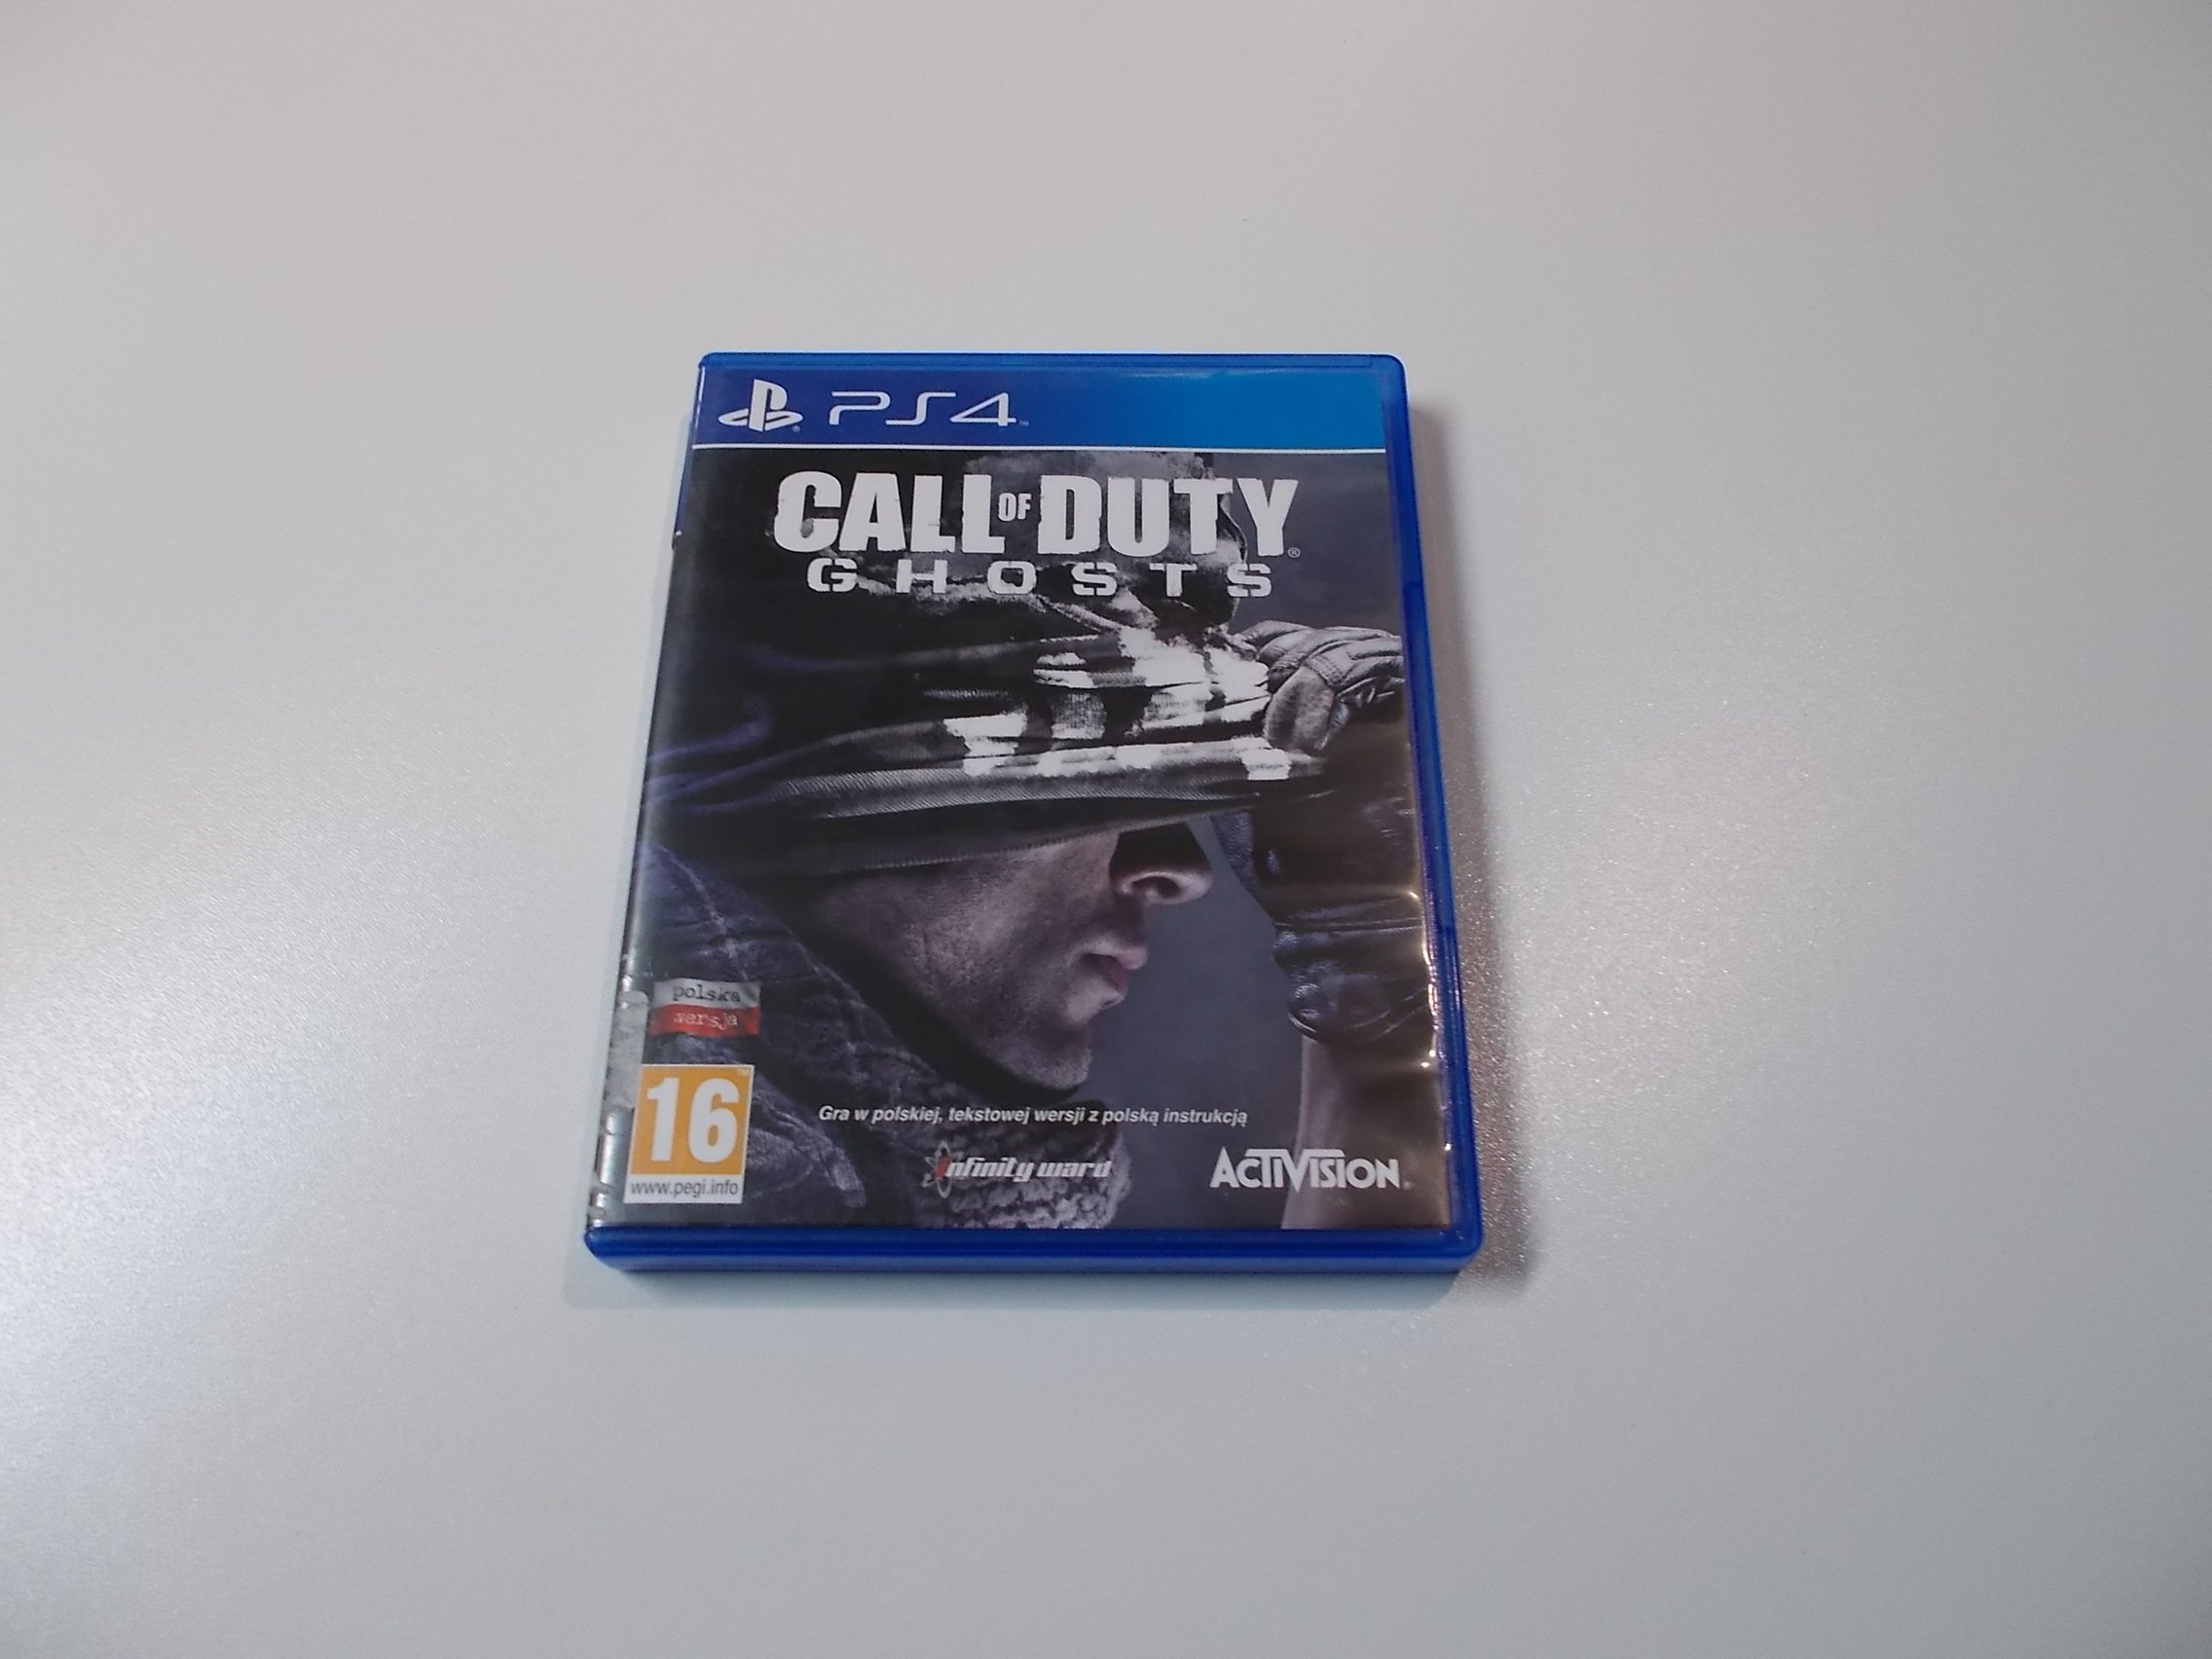 Call of Duty Ghosts - GRA Ps4 - Sklep ALFA Opole 0372